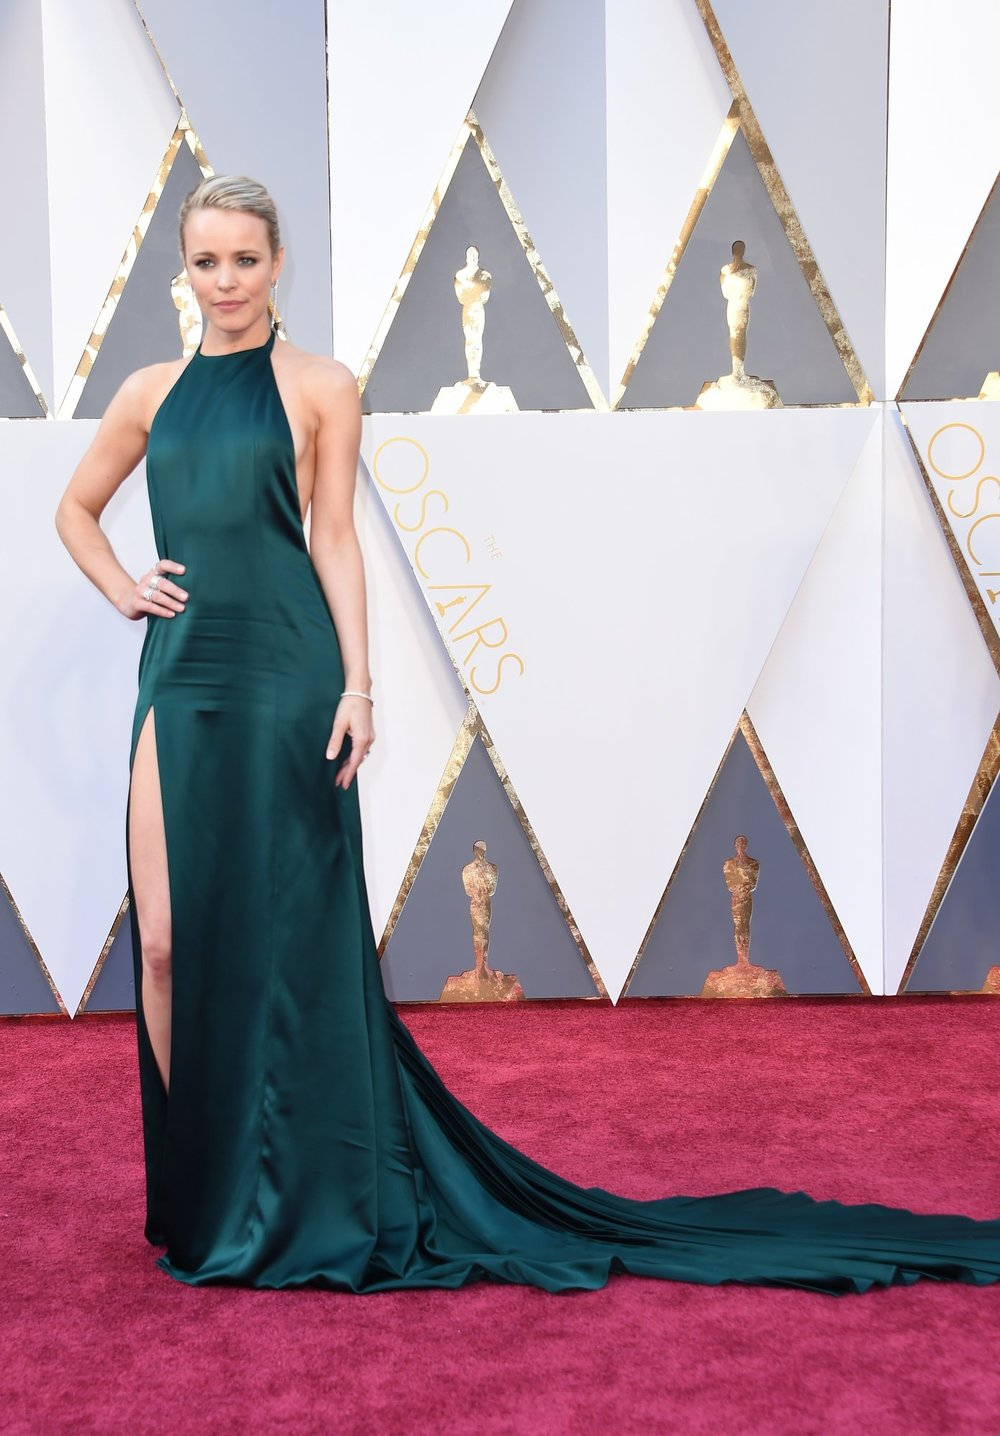 Perhaps too simple for the occasion Rachel McAdams in August Getty Atelier.